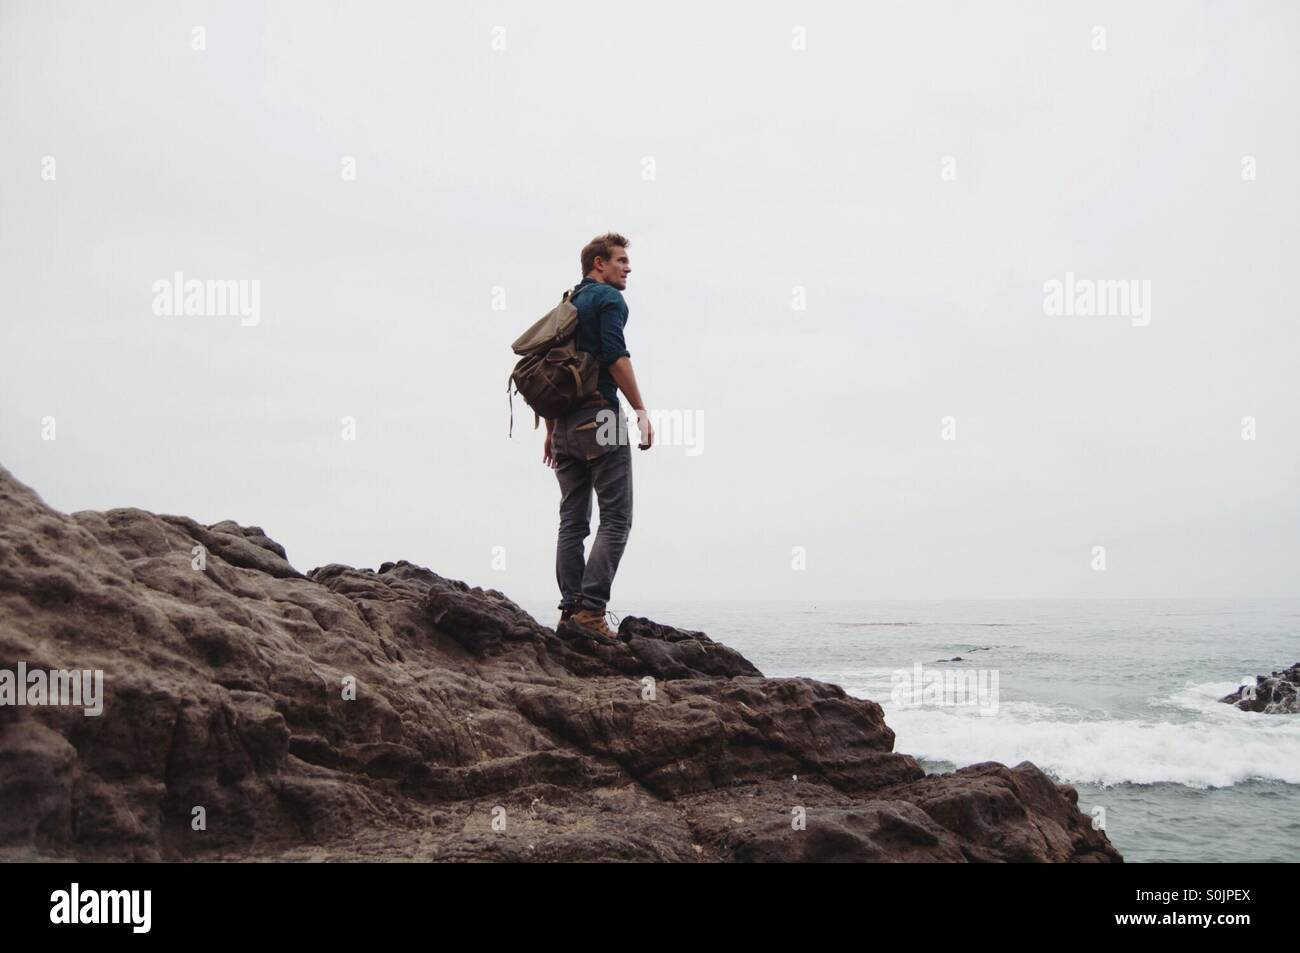 Stand here by the sea - Stock Image